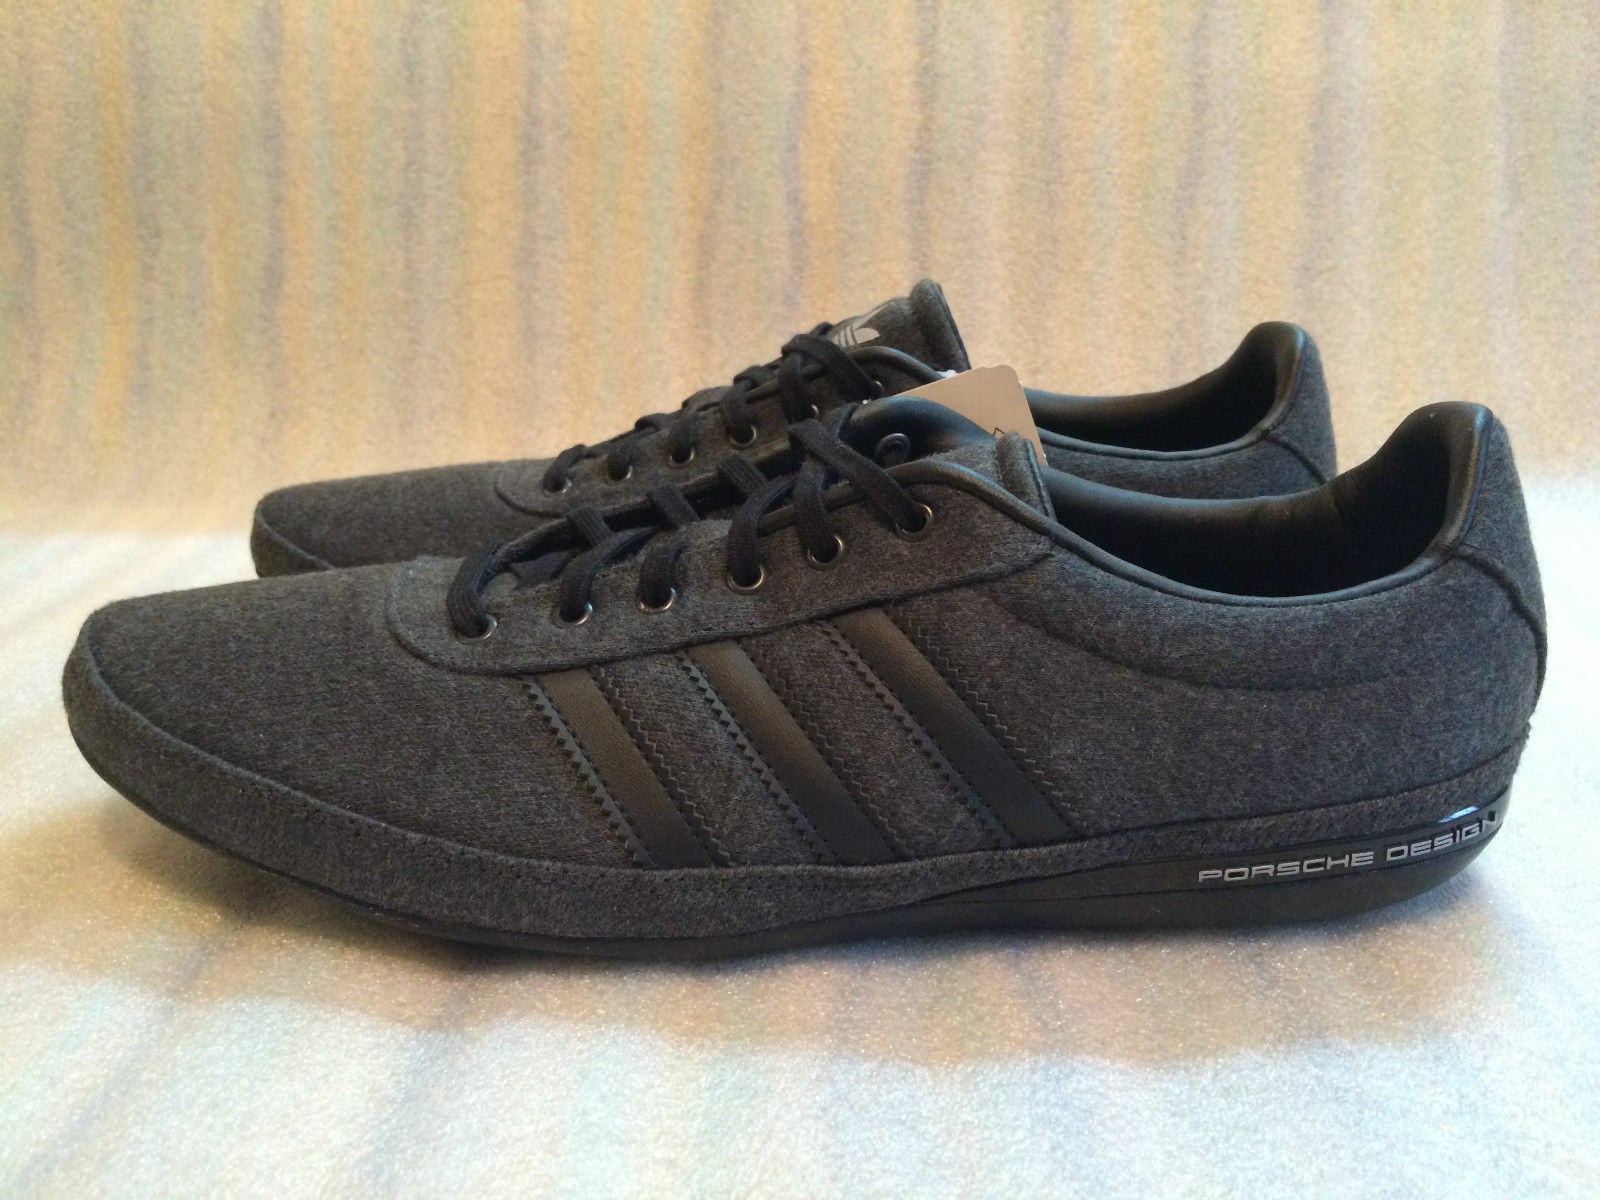 Adidas Porsche Design S3 grey G62106 /// with tags The most popular shoes for men and women